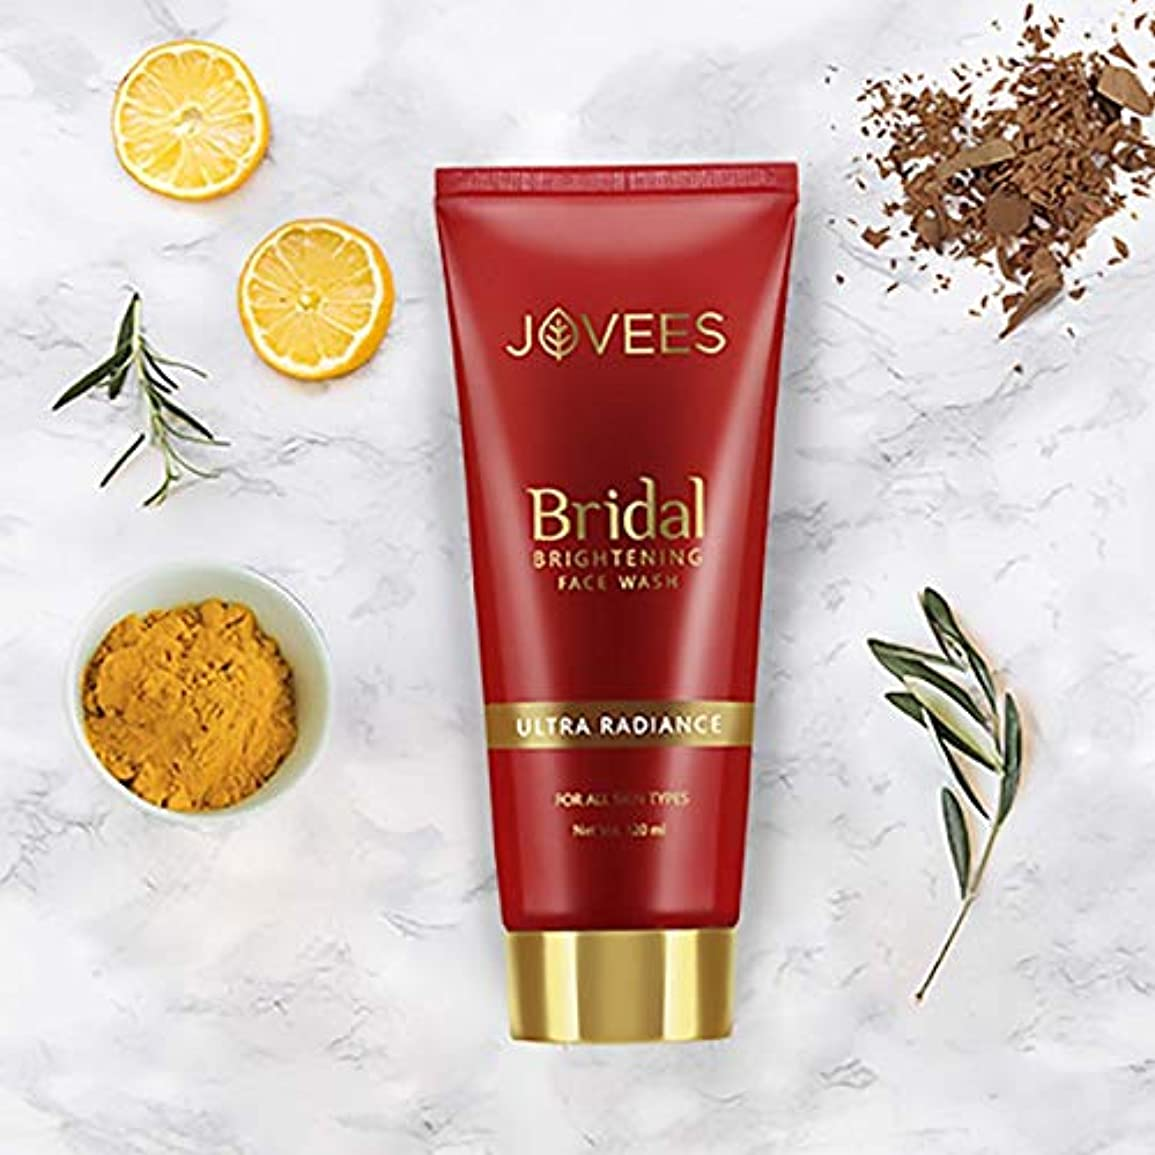 絶えず花輪団結するJovees Bridal Brightening Face Wash 120ml Ultra Radiance Even & brighter complex